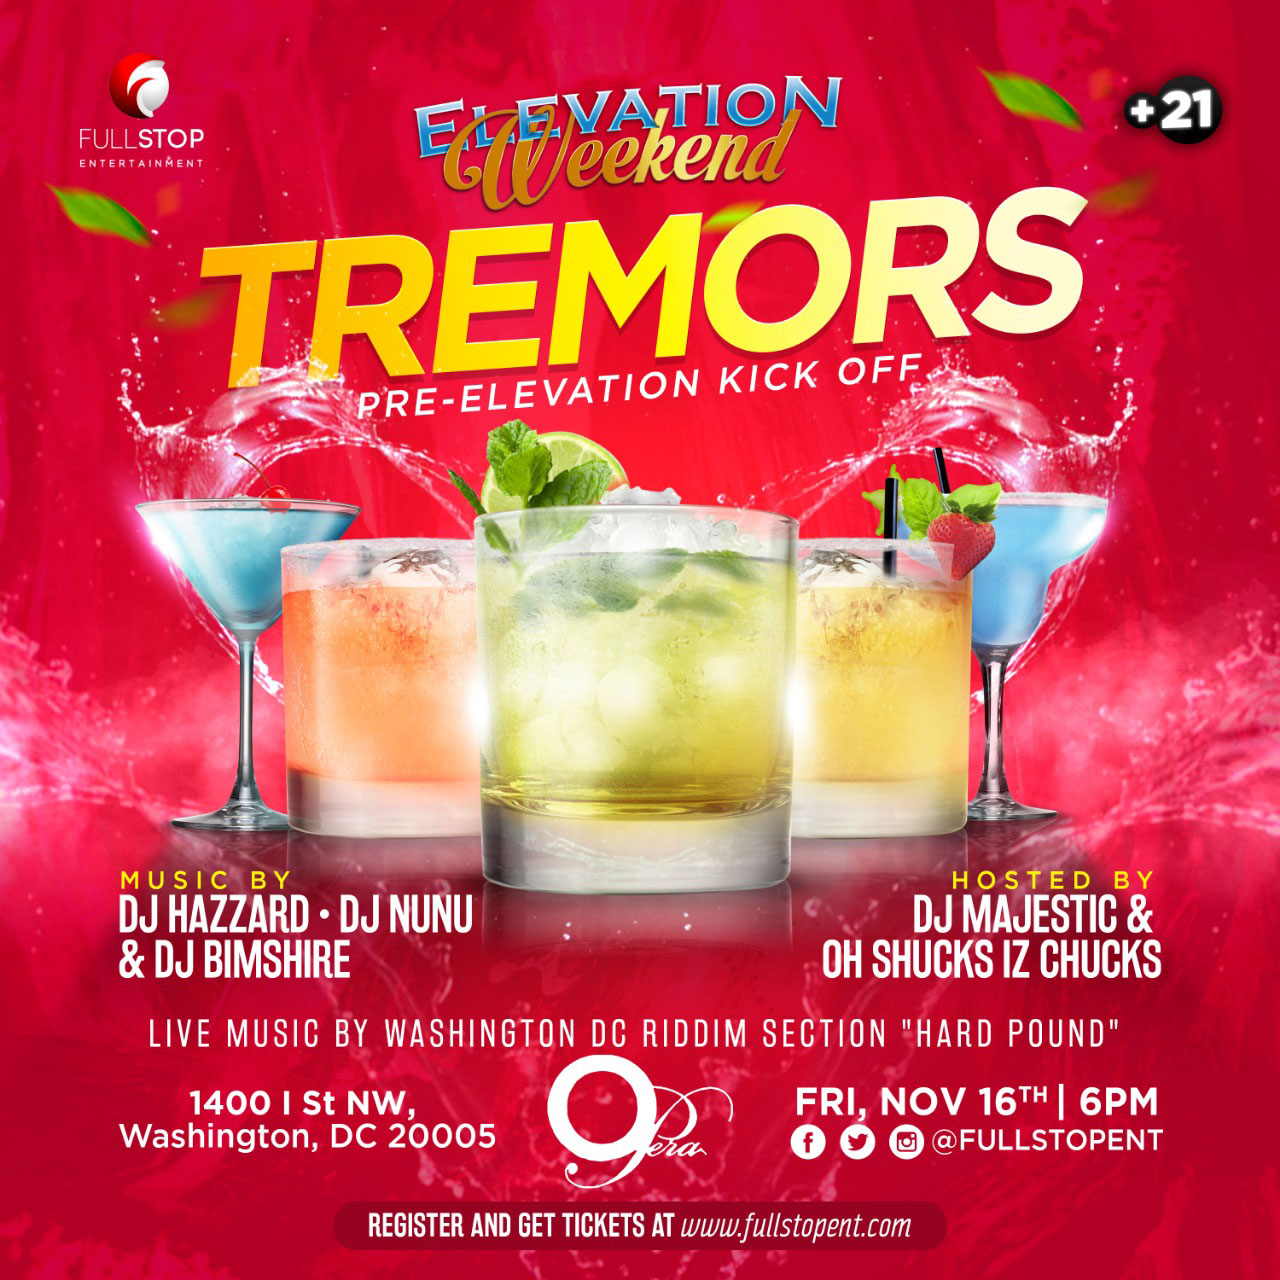 Elevation Weekend 2018: Tremors